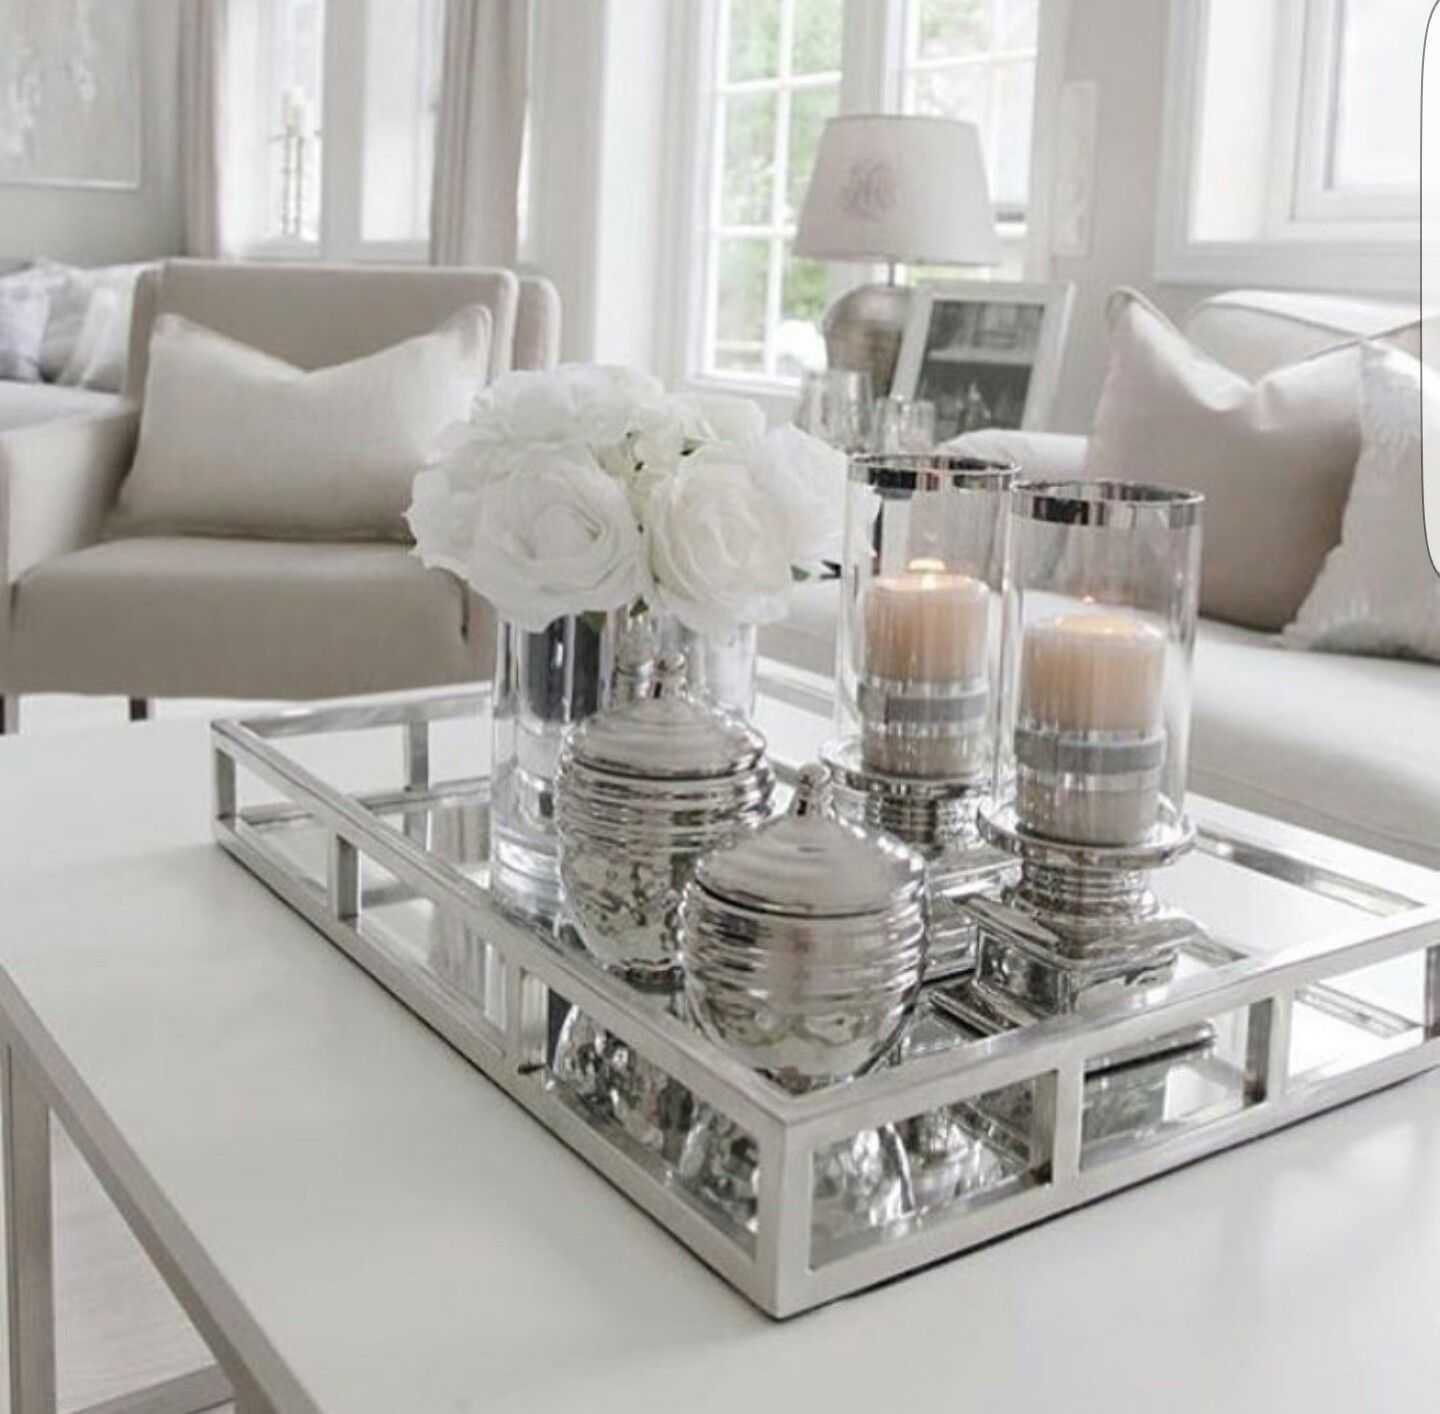 Photos Of Nicely Decorated Living Rooms Mirrors In The Room Pin By Brittany Sherman On Pinterest Discover Ideas About Coffee Table Decorations